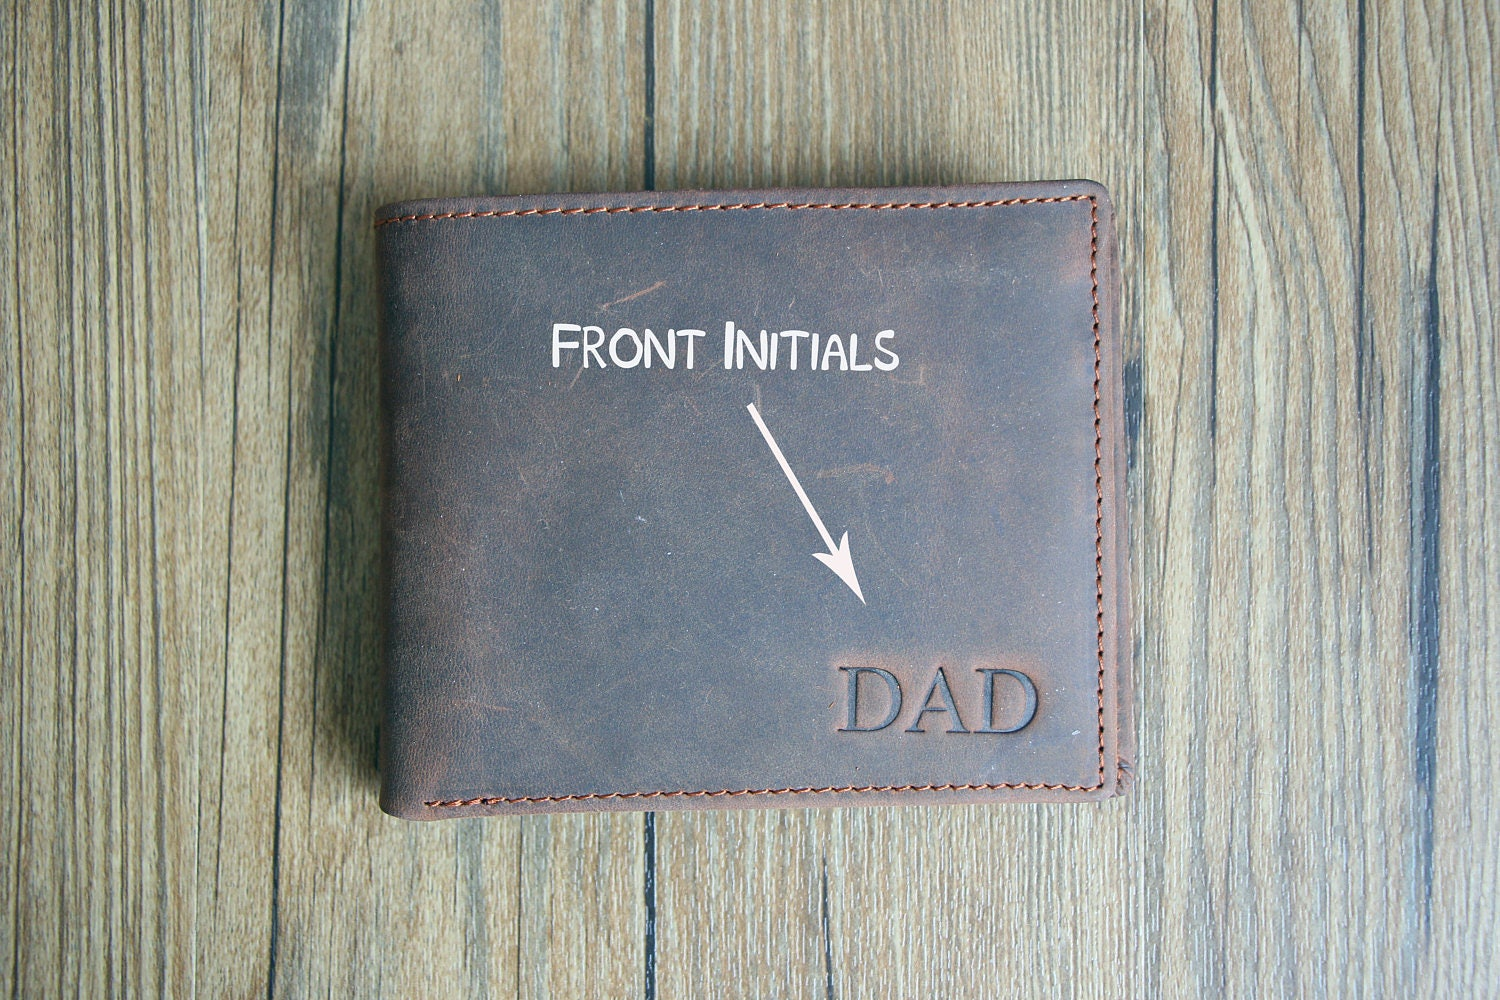 100 quote ideas for fathers day birthday gifts him dad